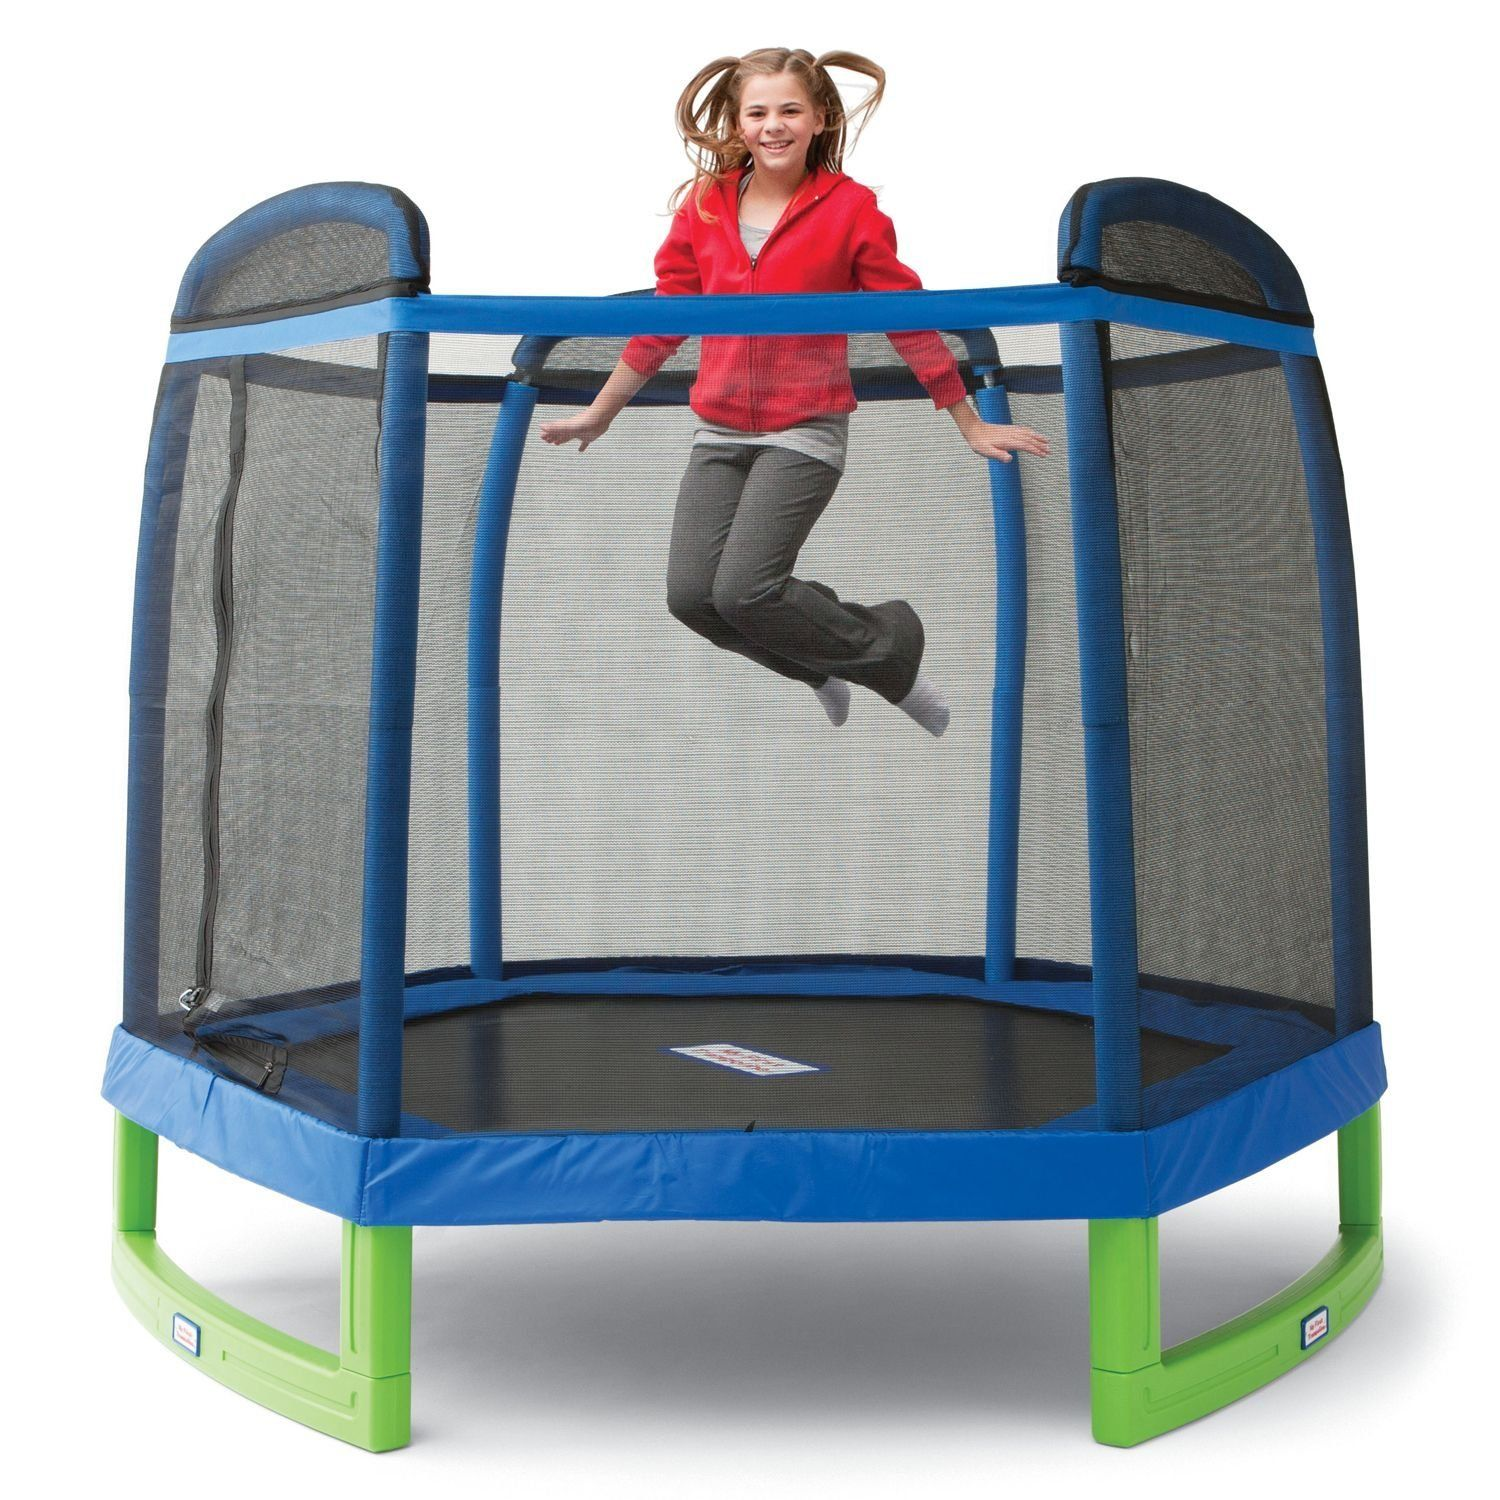 My First Trampoline By Sportspower